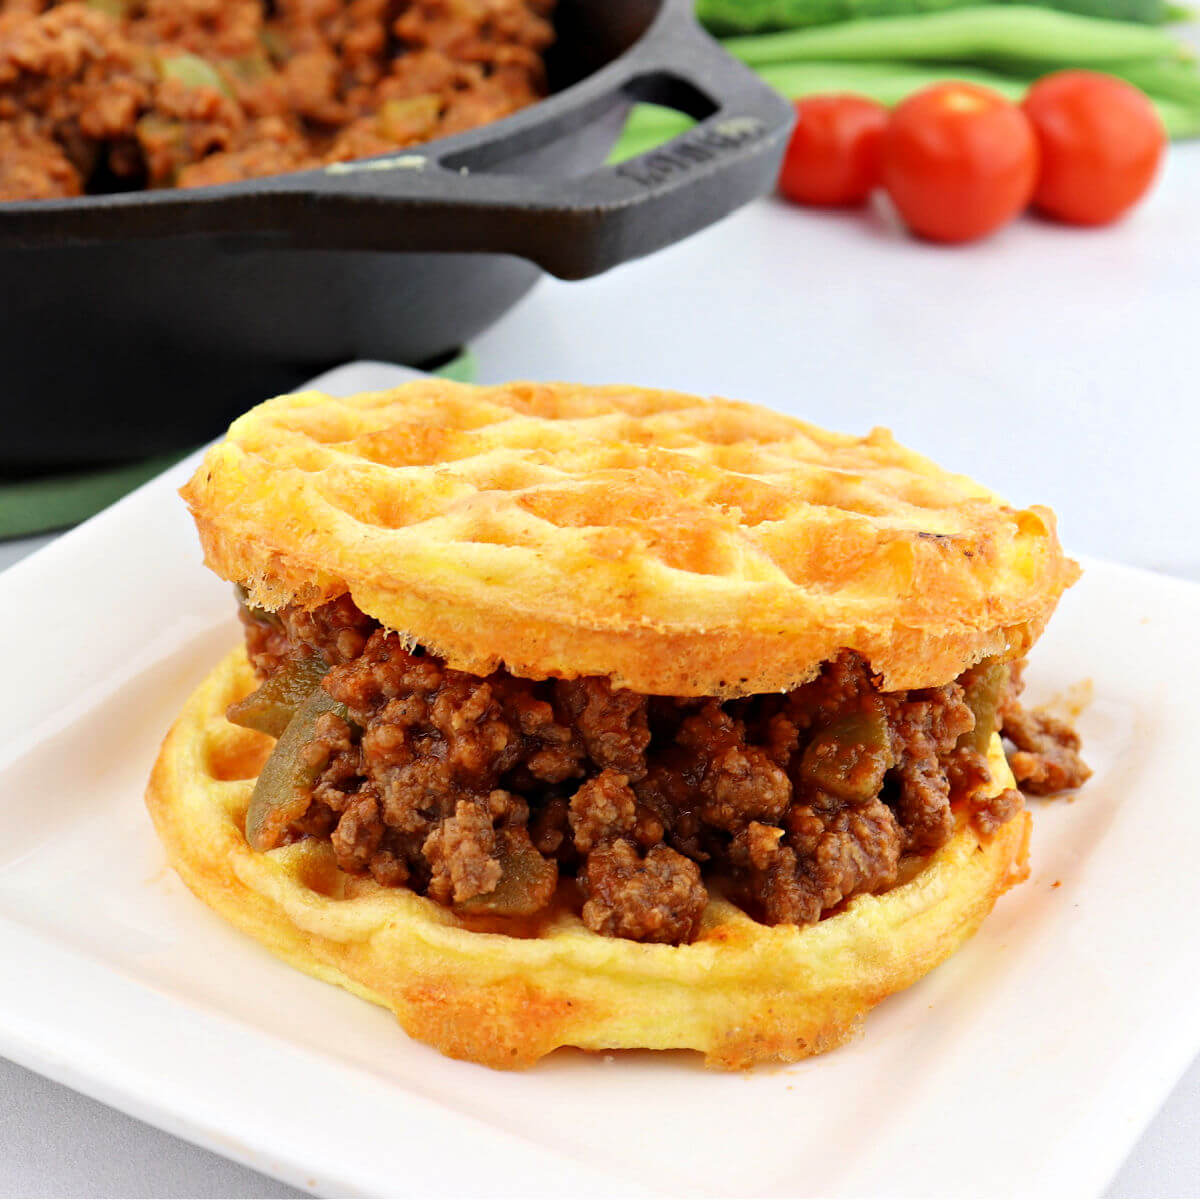 Keto sloppy Joe made in two chaffles.